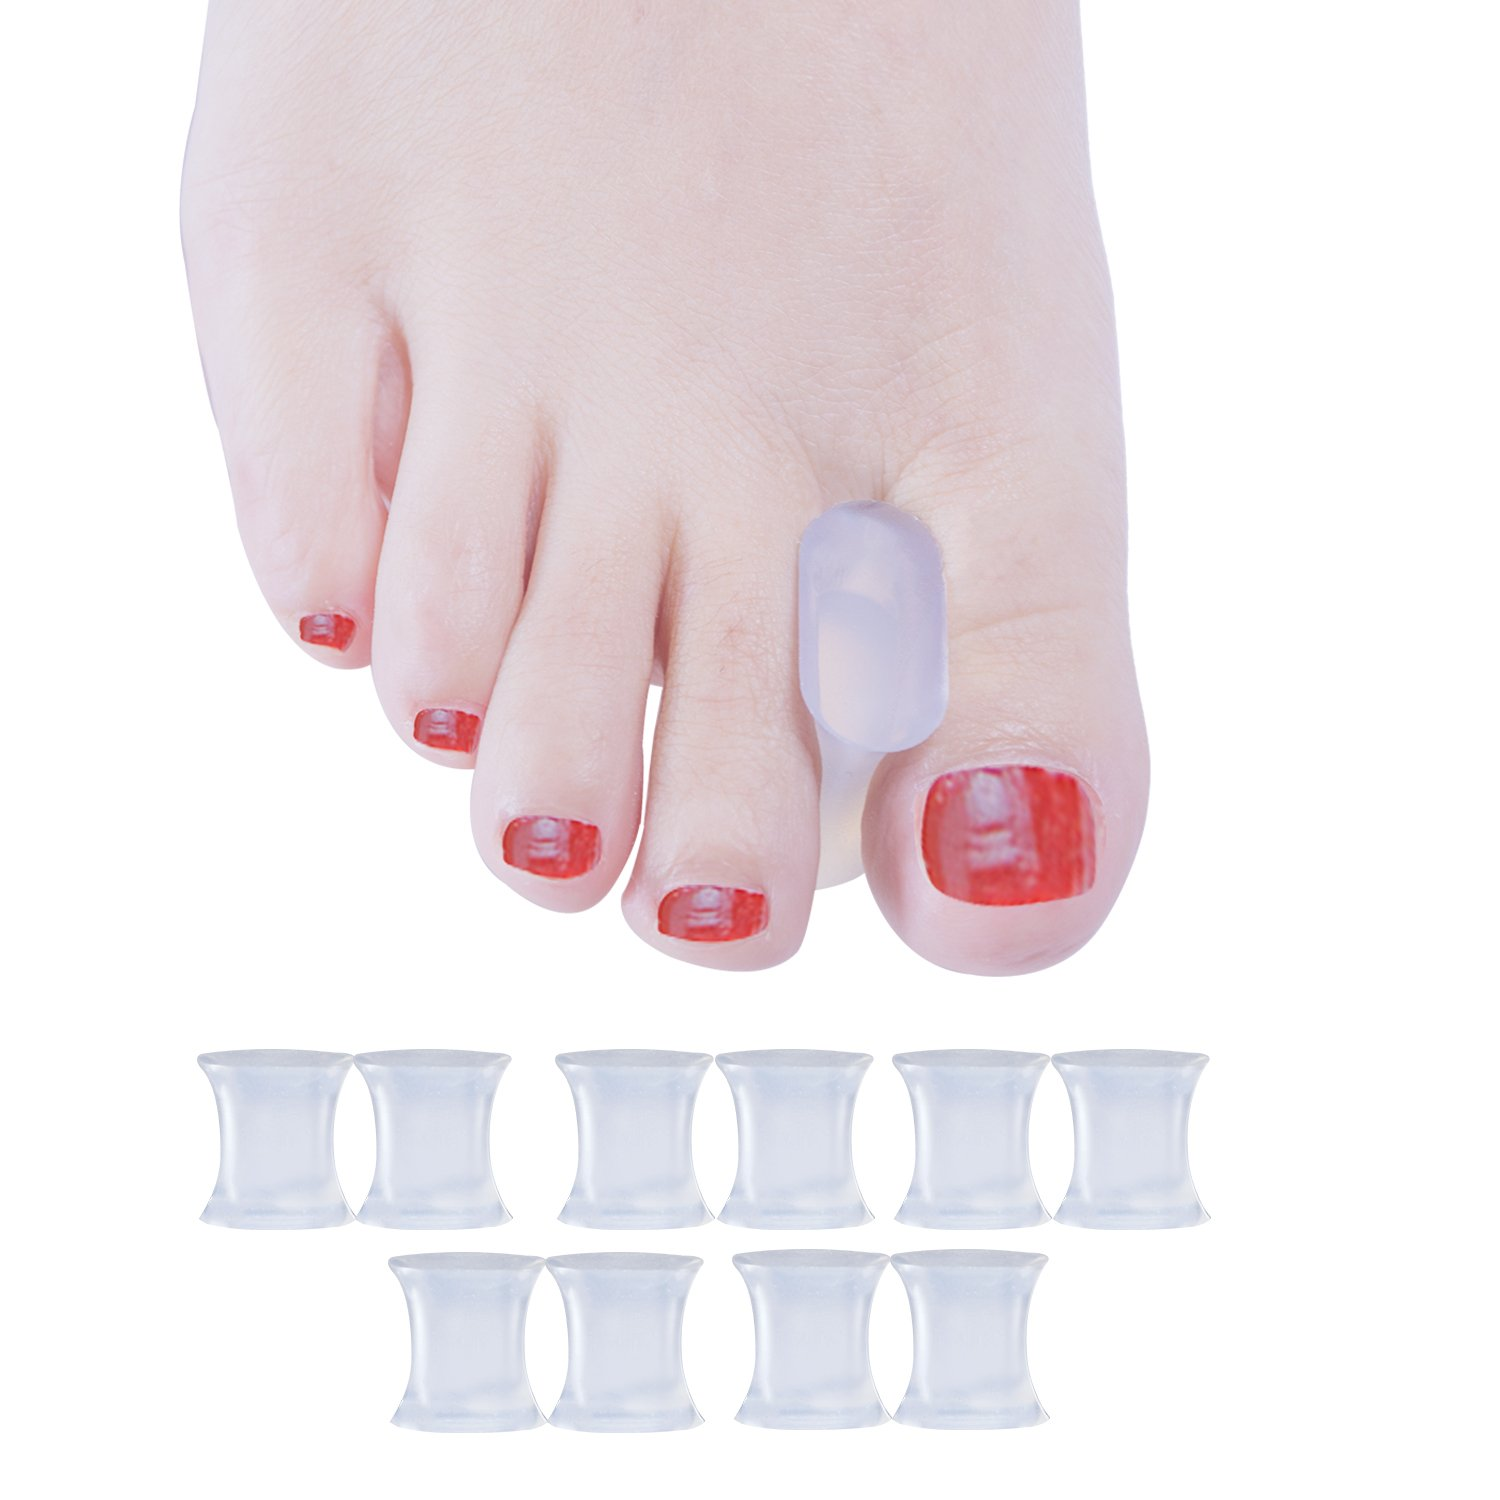 Welnove Gel Toe Spacers Toe Separators for Bunion, Overlapping Toes Size L-10 PCS